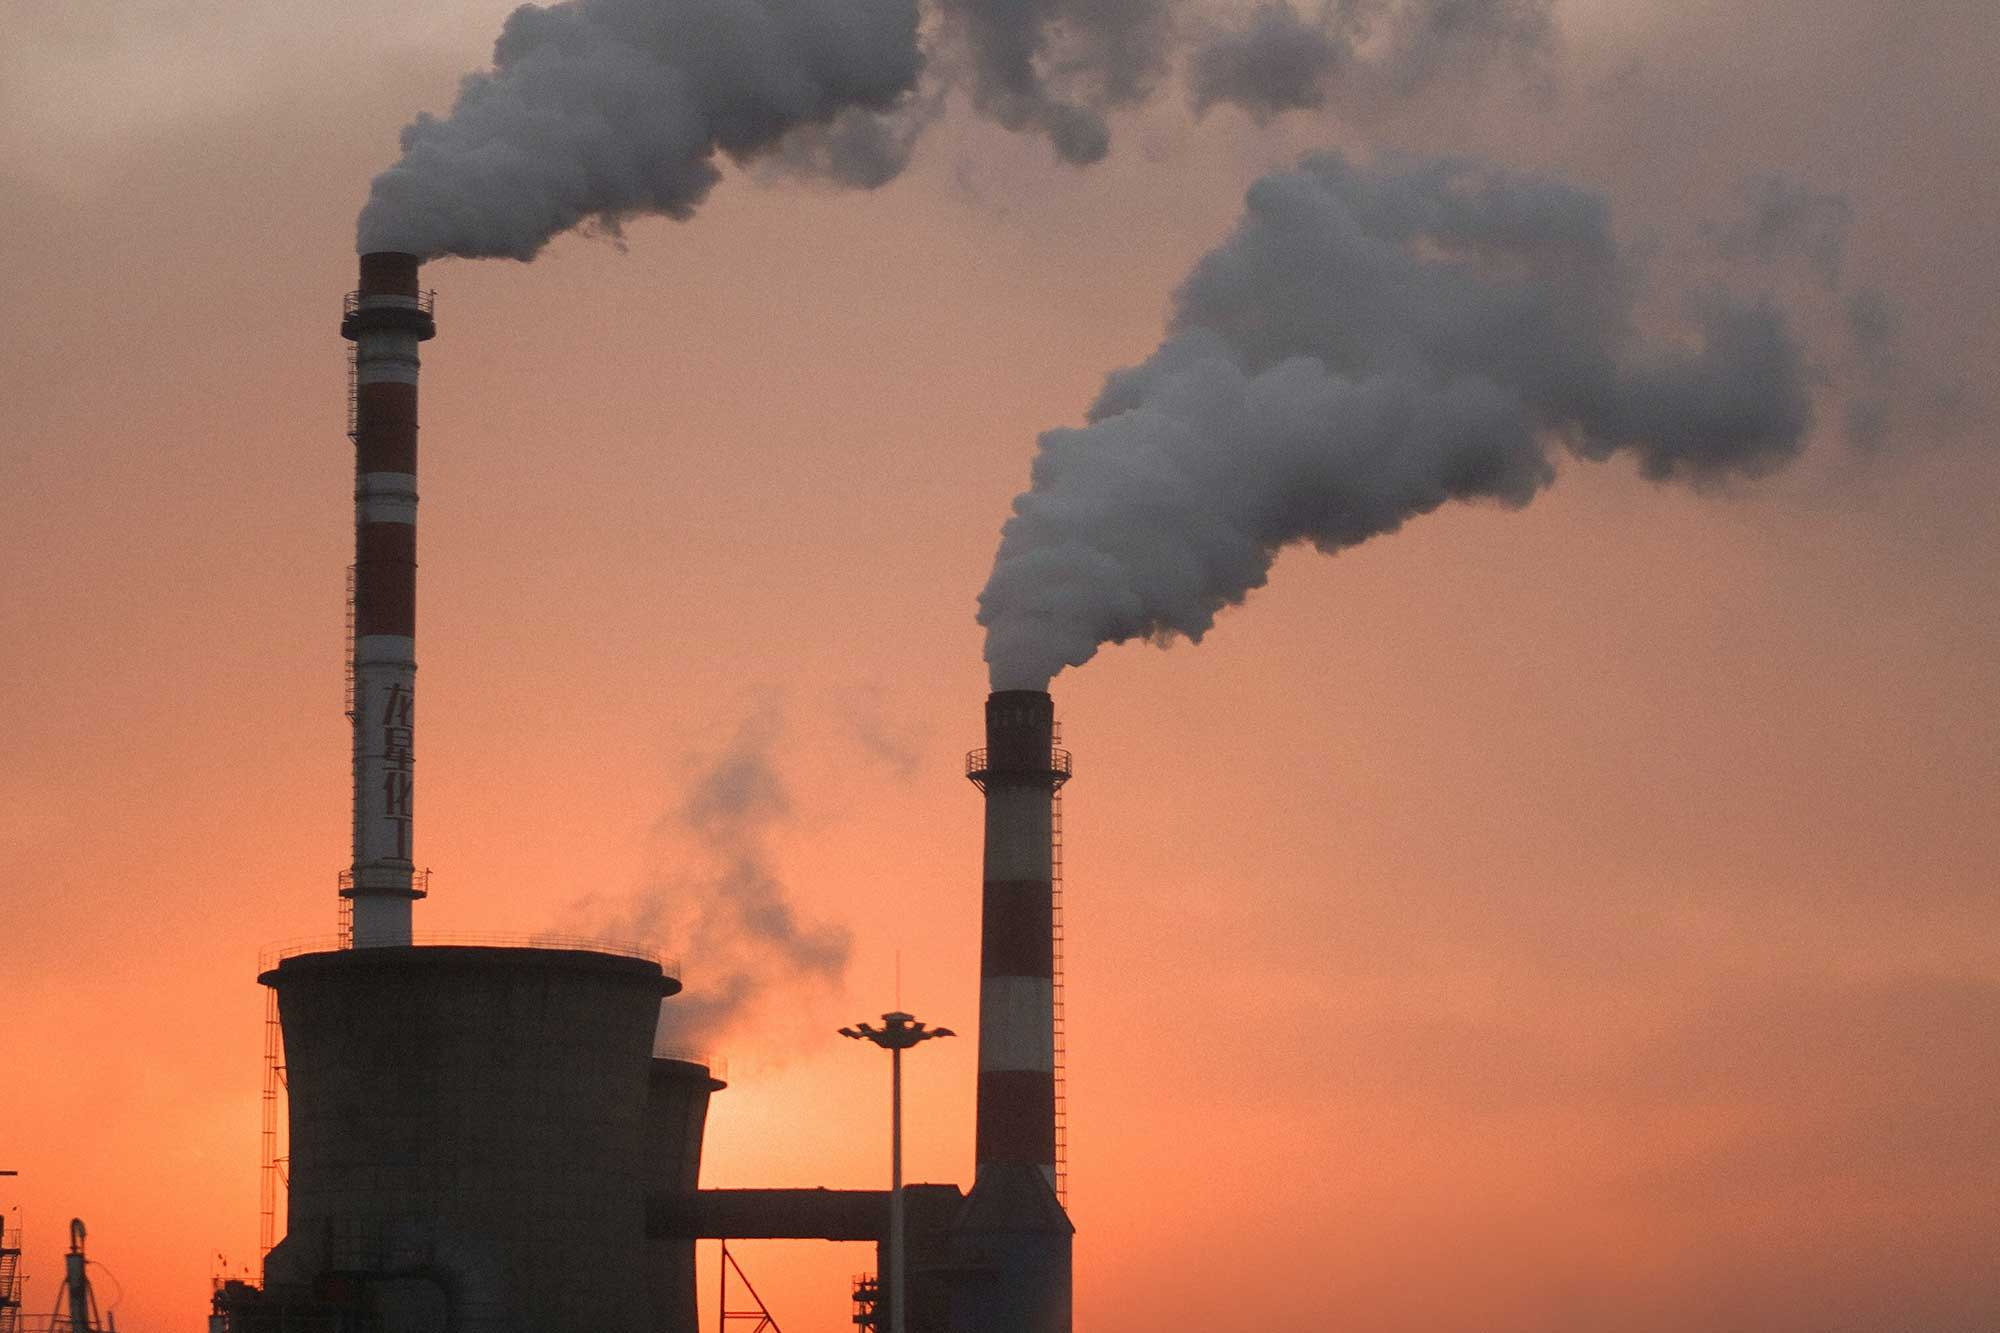 Greenhouse gases from factory